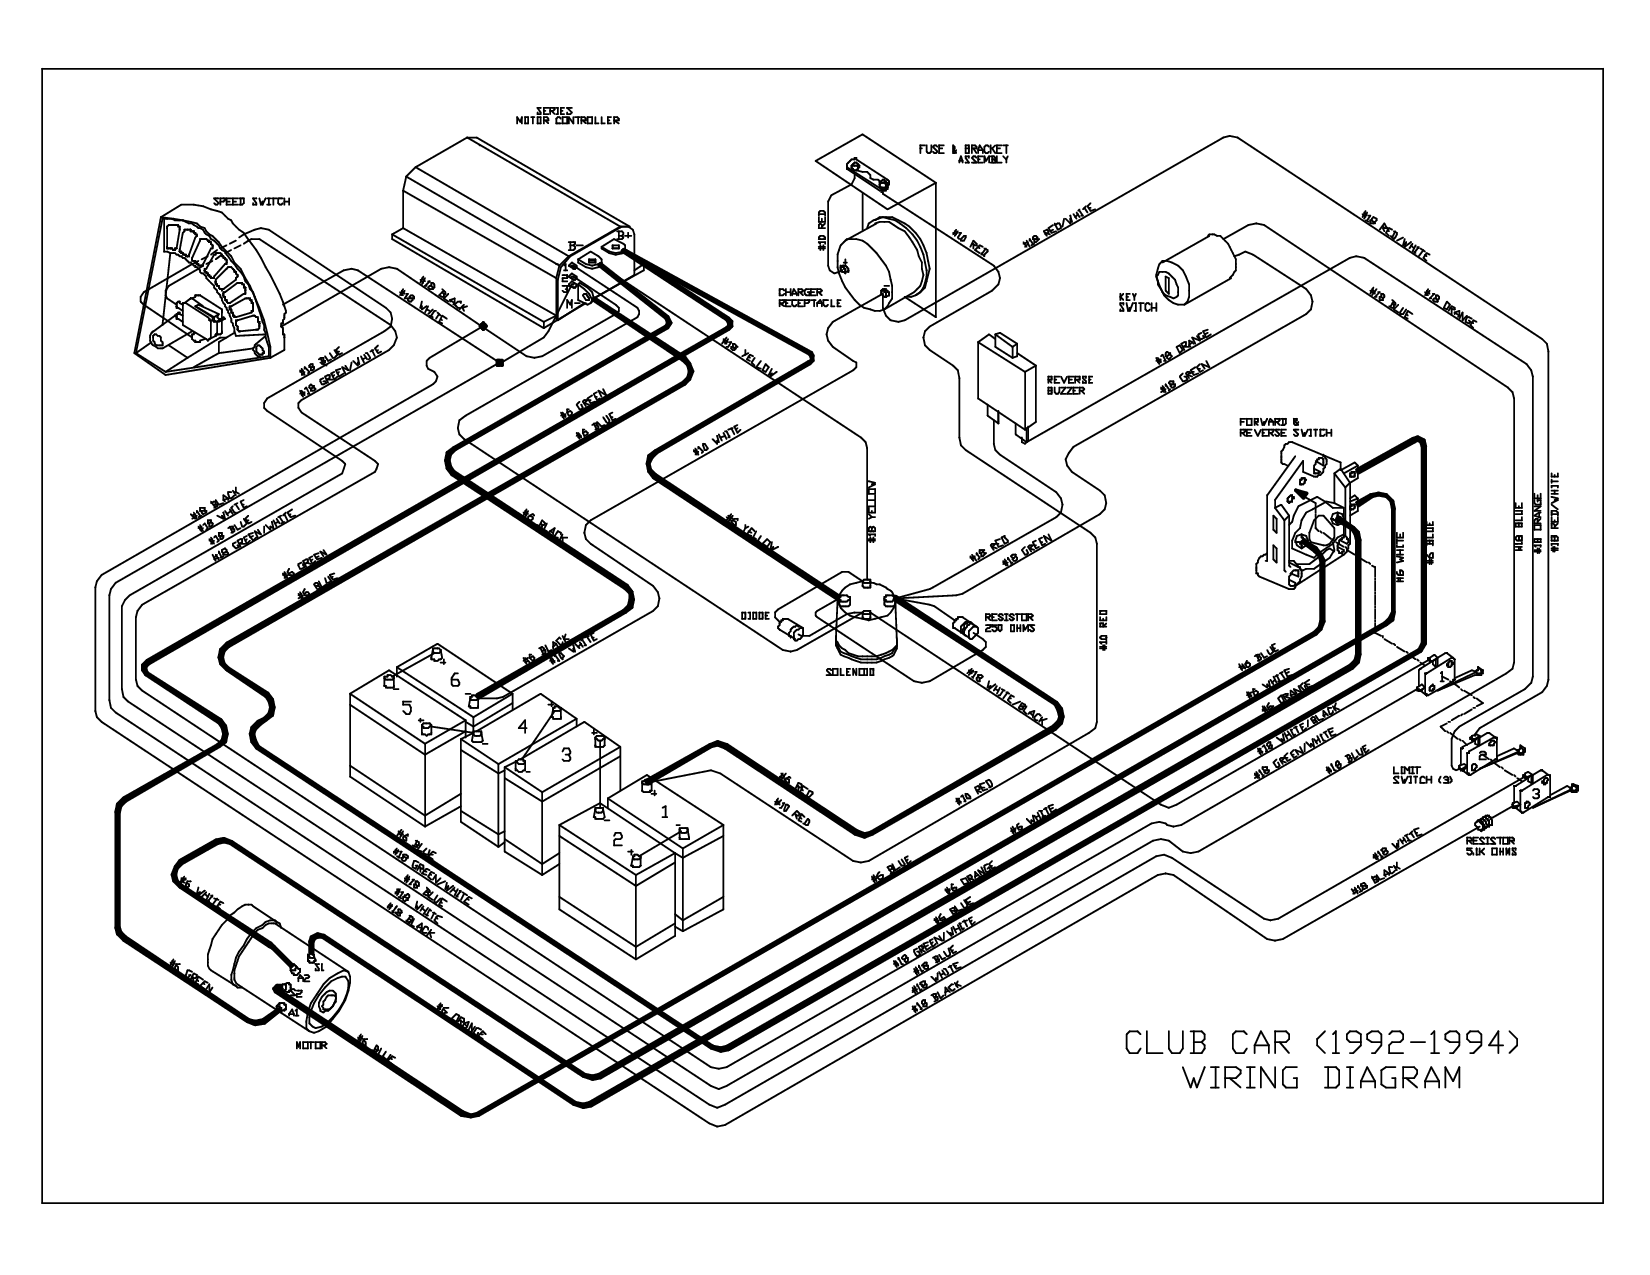 hight resolution of wiring diagram for club car 12v free download data wiring diagram 92 club car wiring diagram